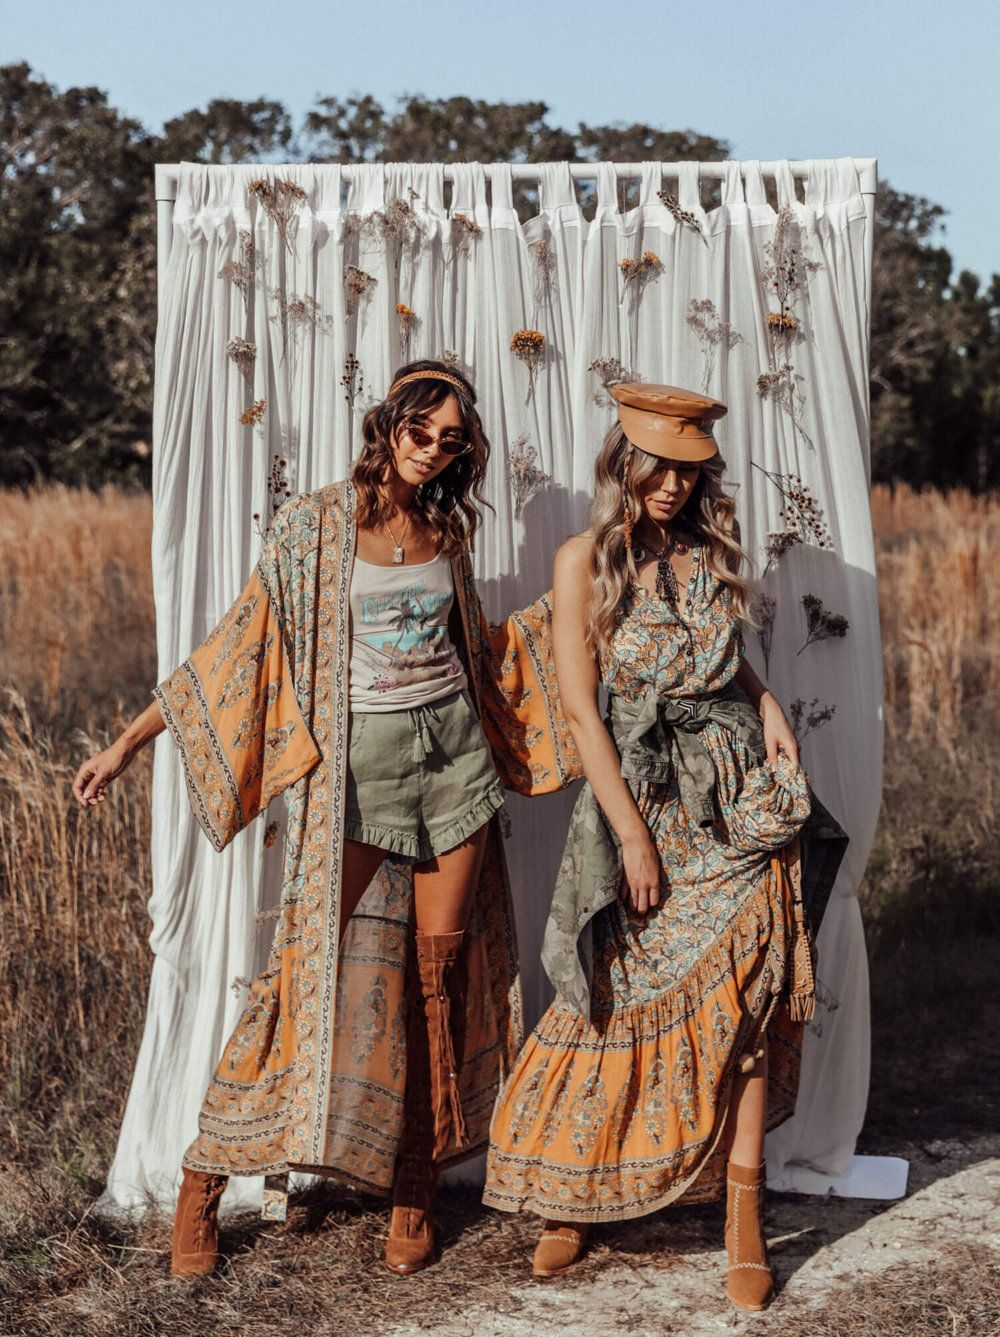 The 13 best boho brands from Australia you just have to discover now!